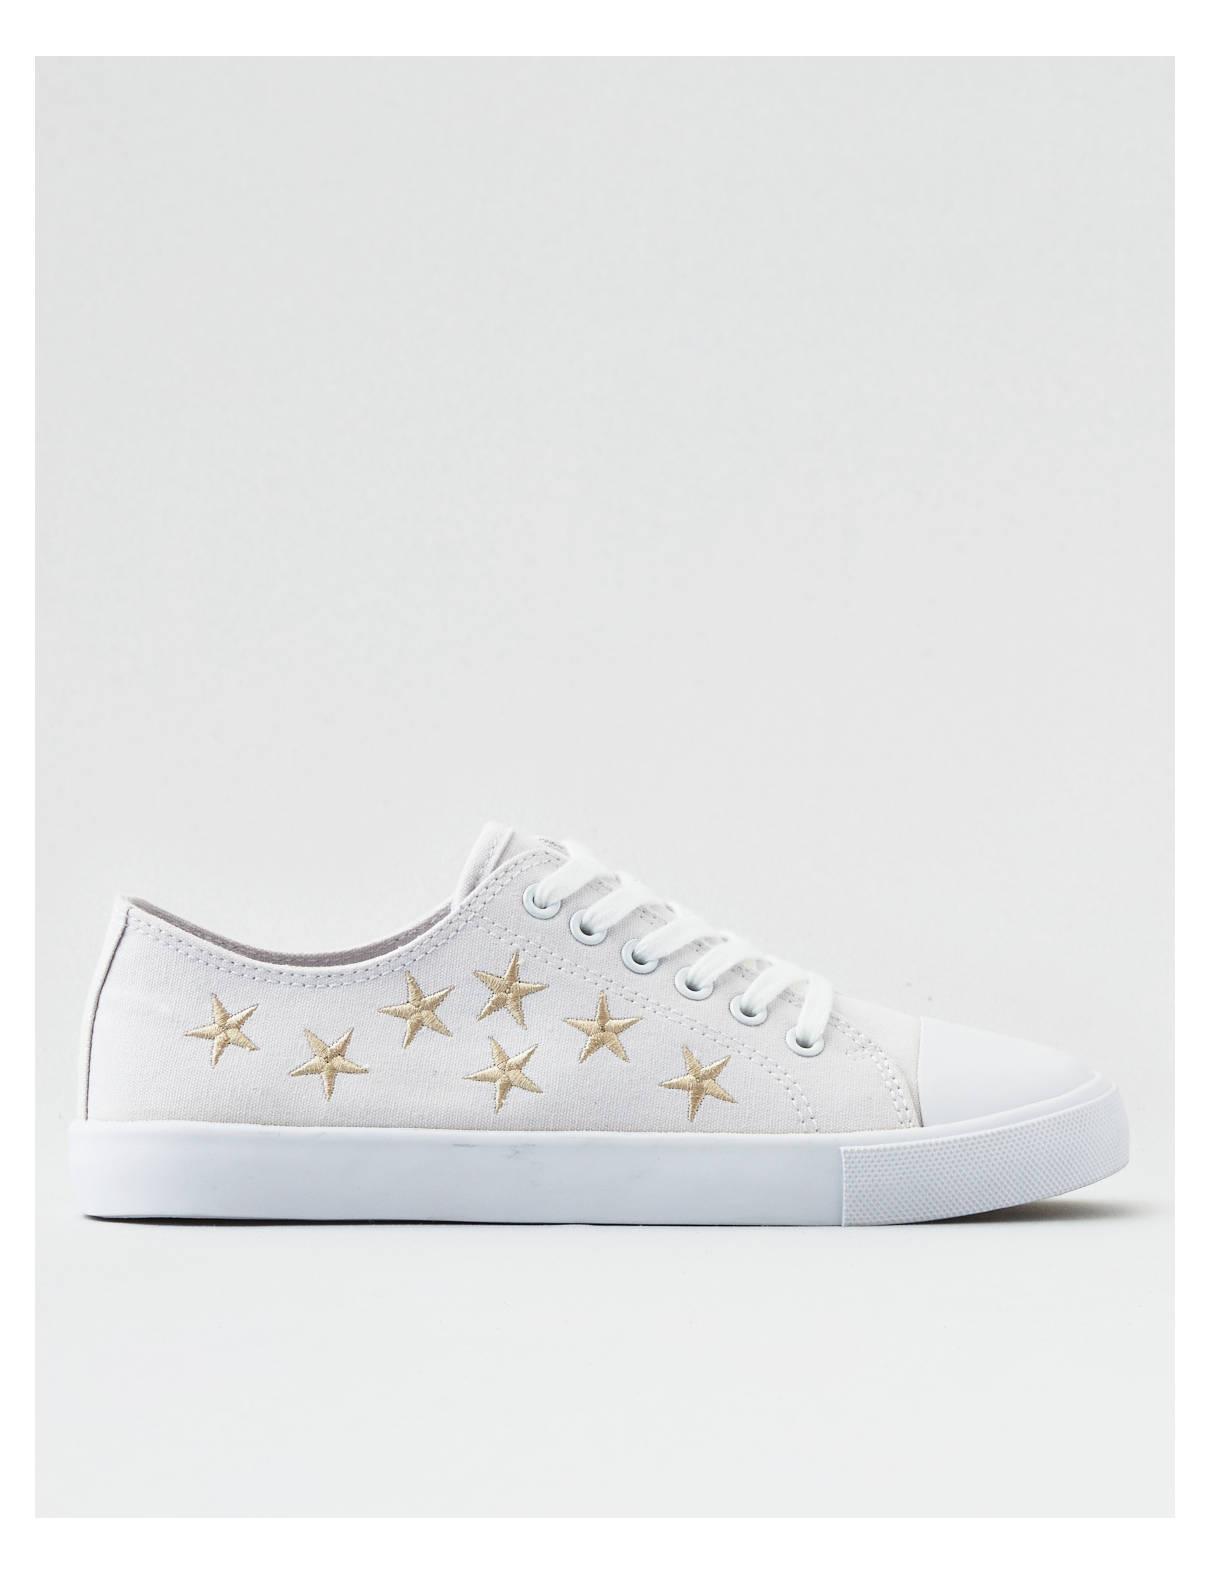 Display product reviews for AEO Embroidered Stars Low Top Sneaker